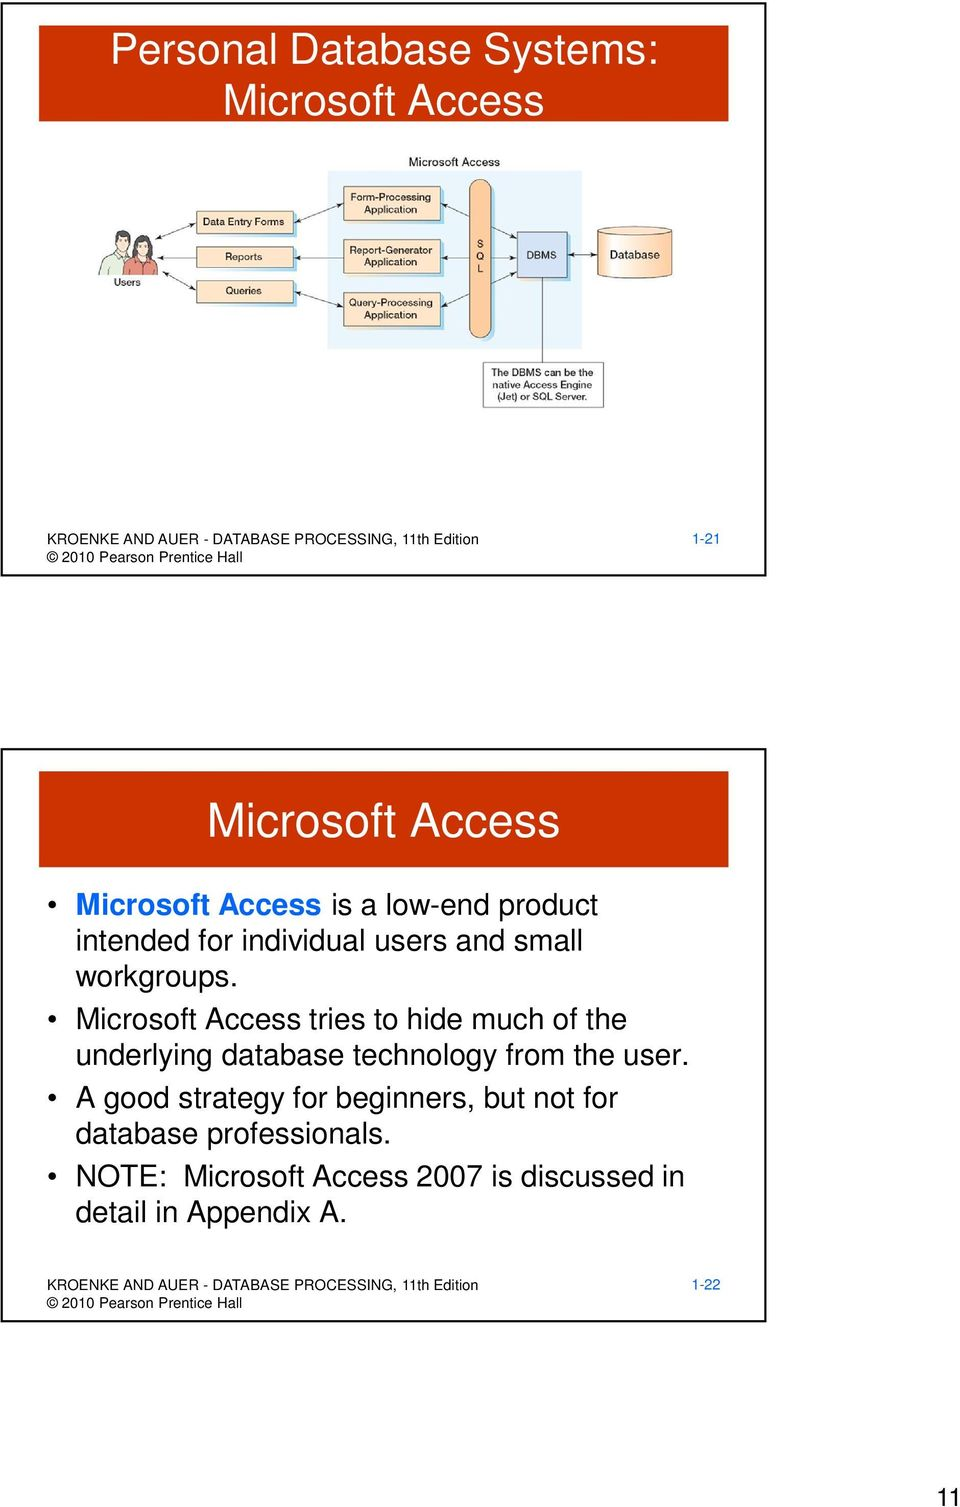 Microsoft Access tries to hide much of the underlying database technology from the user.